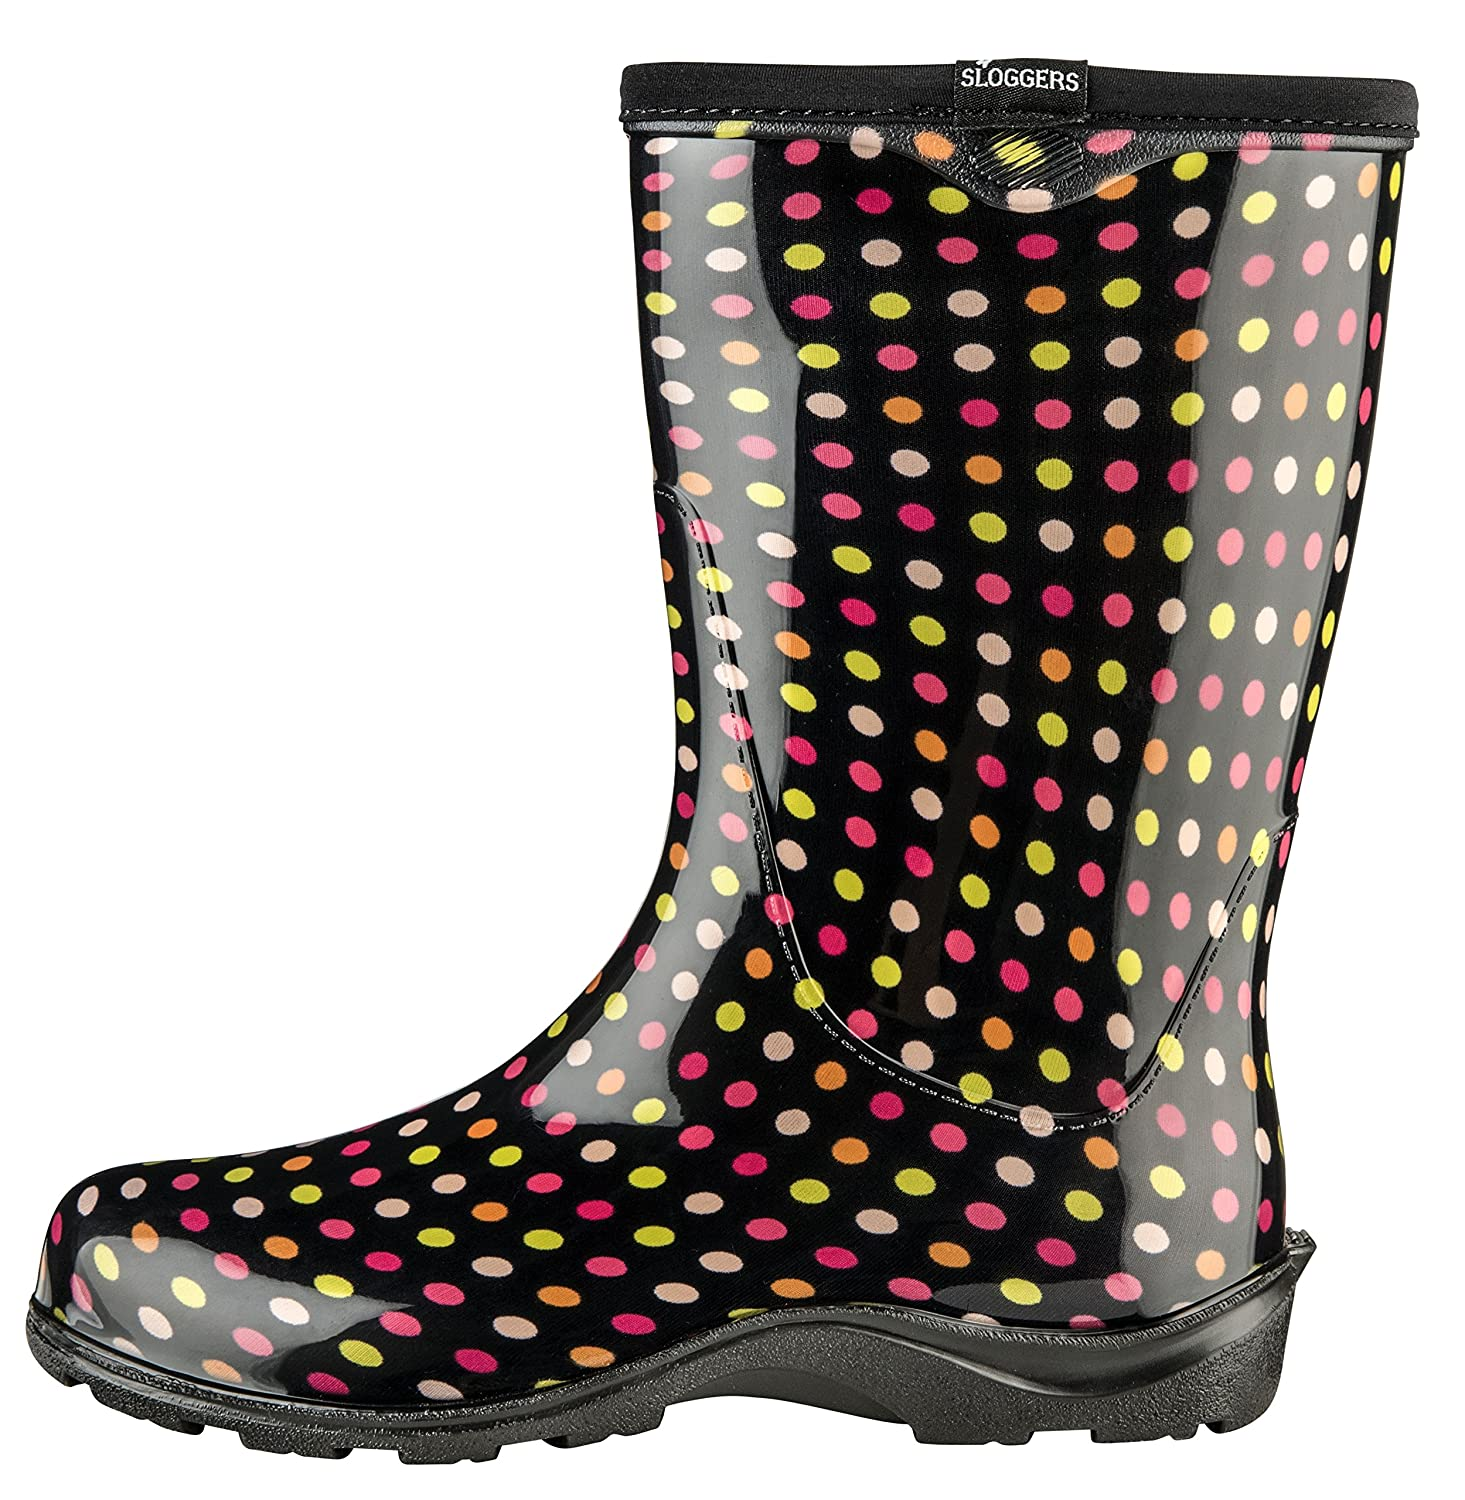 Sloggers 5017PDM11 Floral Collection Women's Rain 11, & Garden Boot, Size 11, Rain Multicolor B01H73PBJC Size 11 9c3bf7